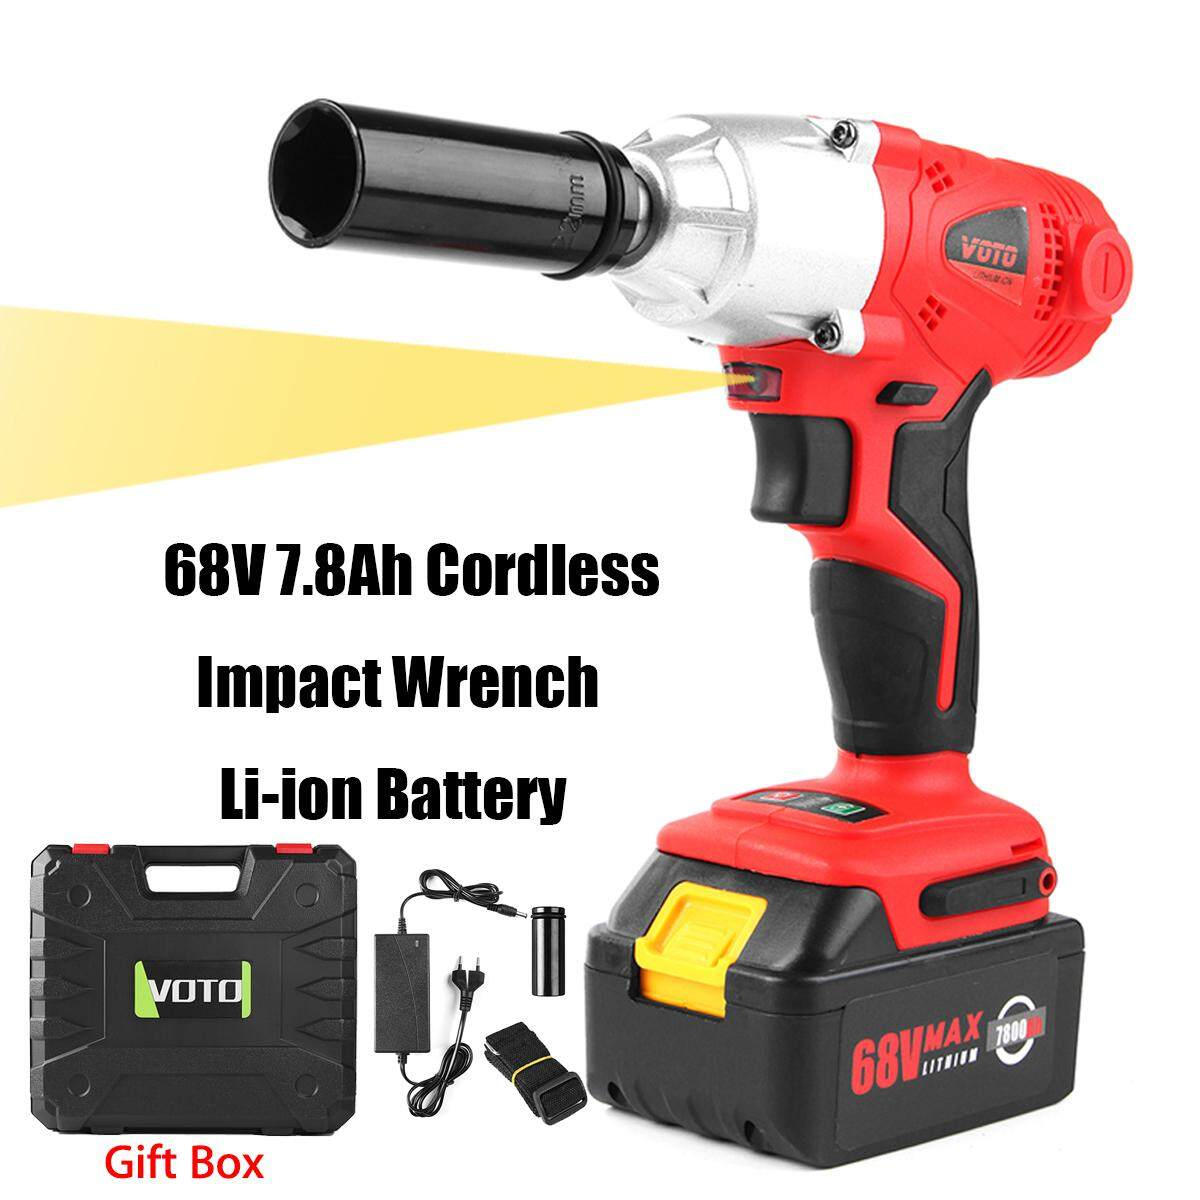 Home Impact Wrenches Buy At Best Price In Air 1 2 Inch Tekiro 68v 78ah Cordless Wrench Li Ion Battery High Torque Charger Power Tool